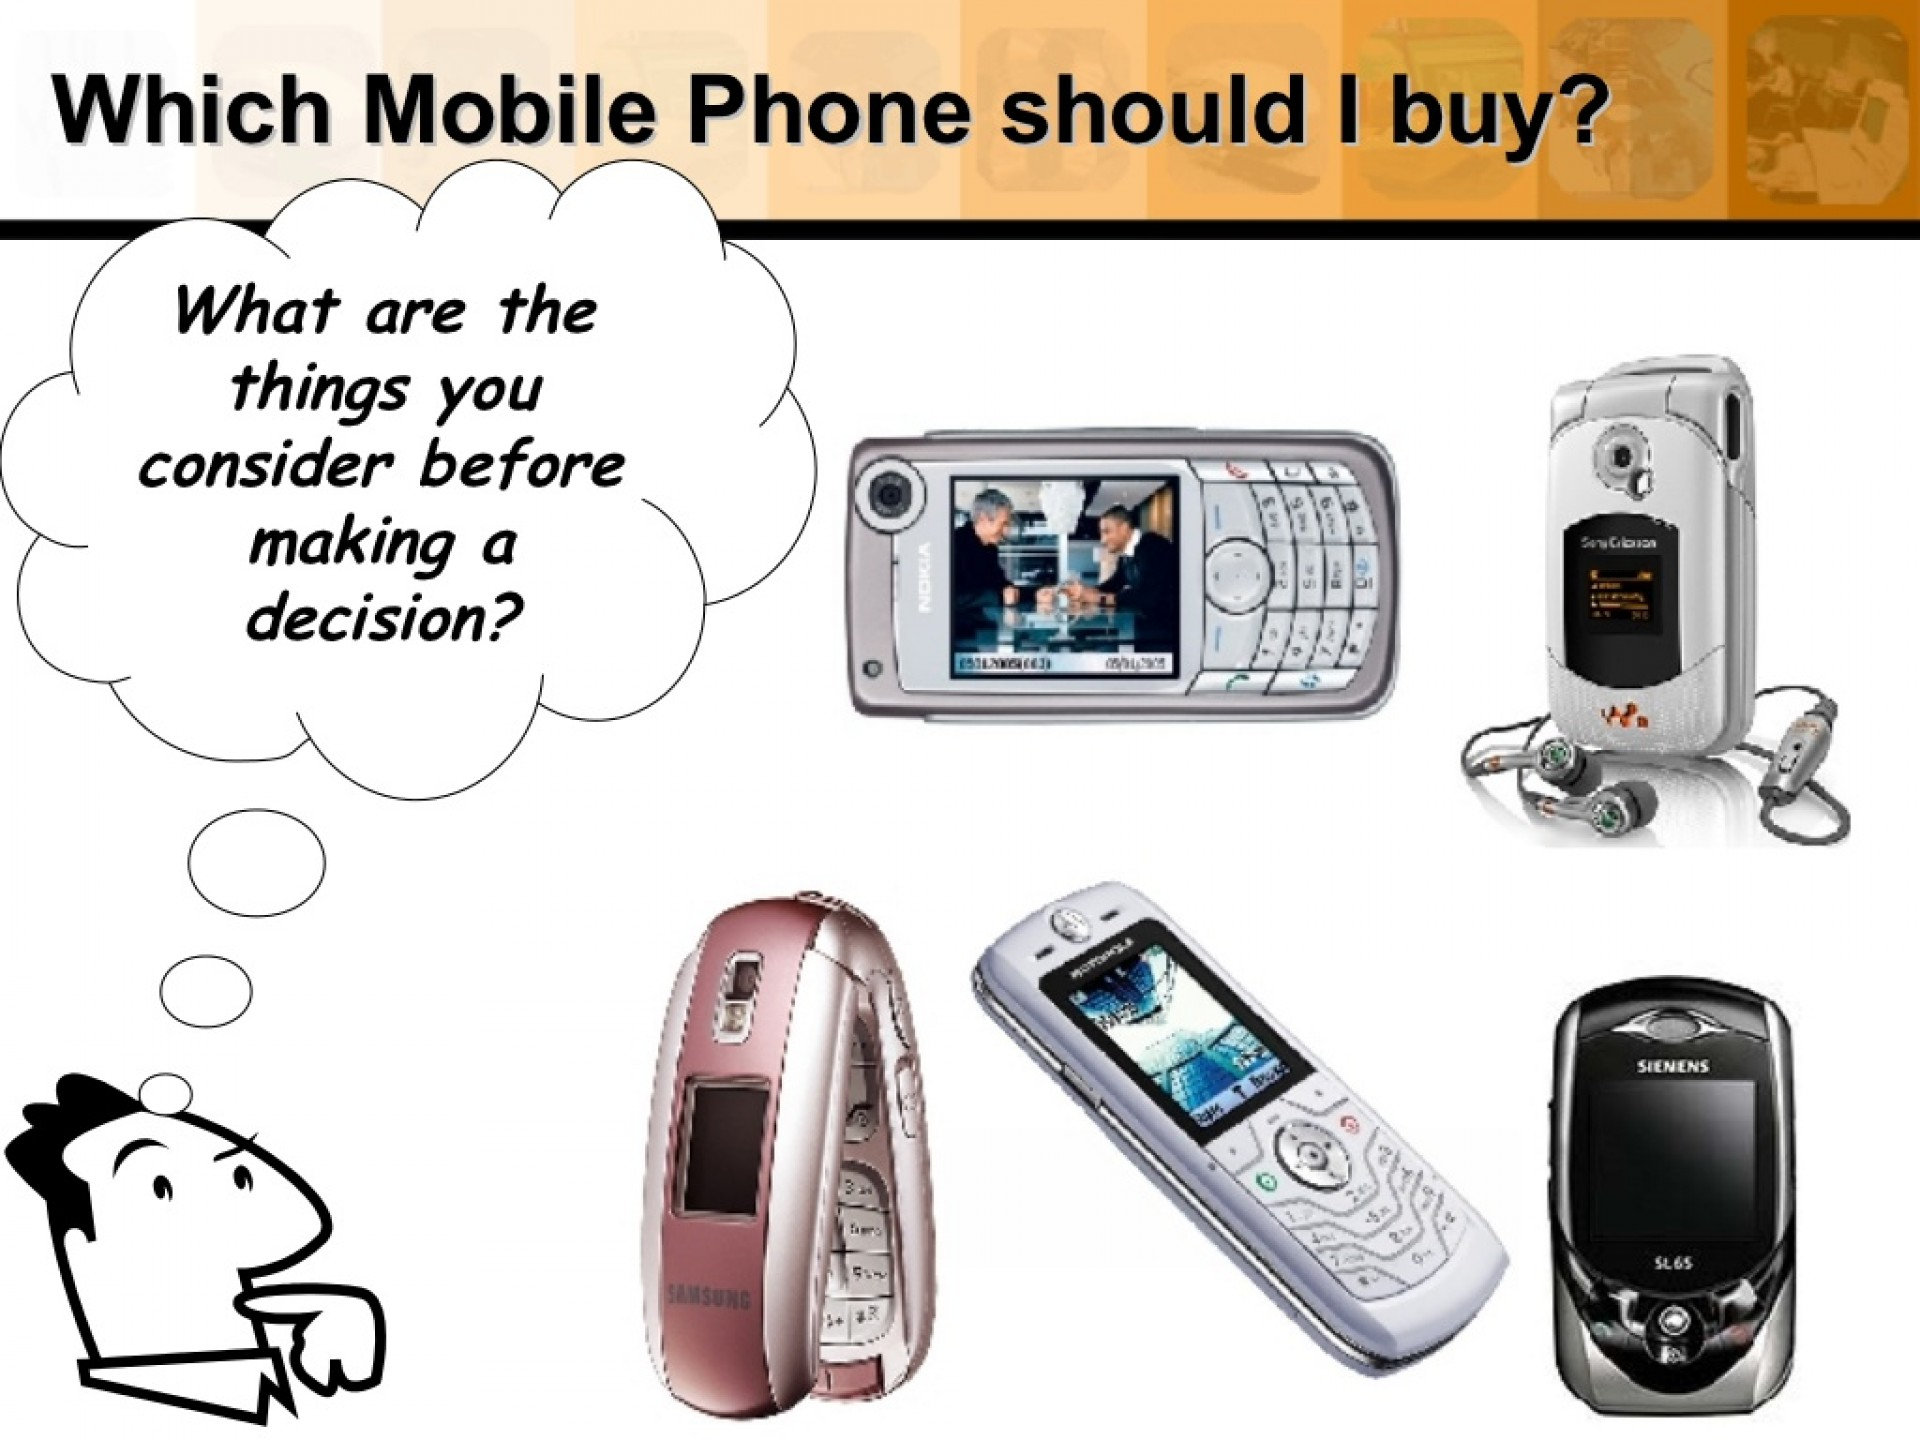 023 Mobile Phones Should Banned In Schools Essay Example Slide Unique Be Cell Not Argumentative 1920